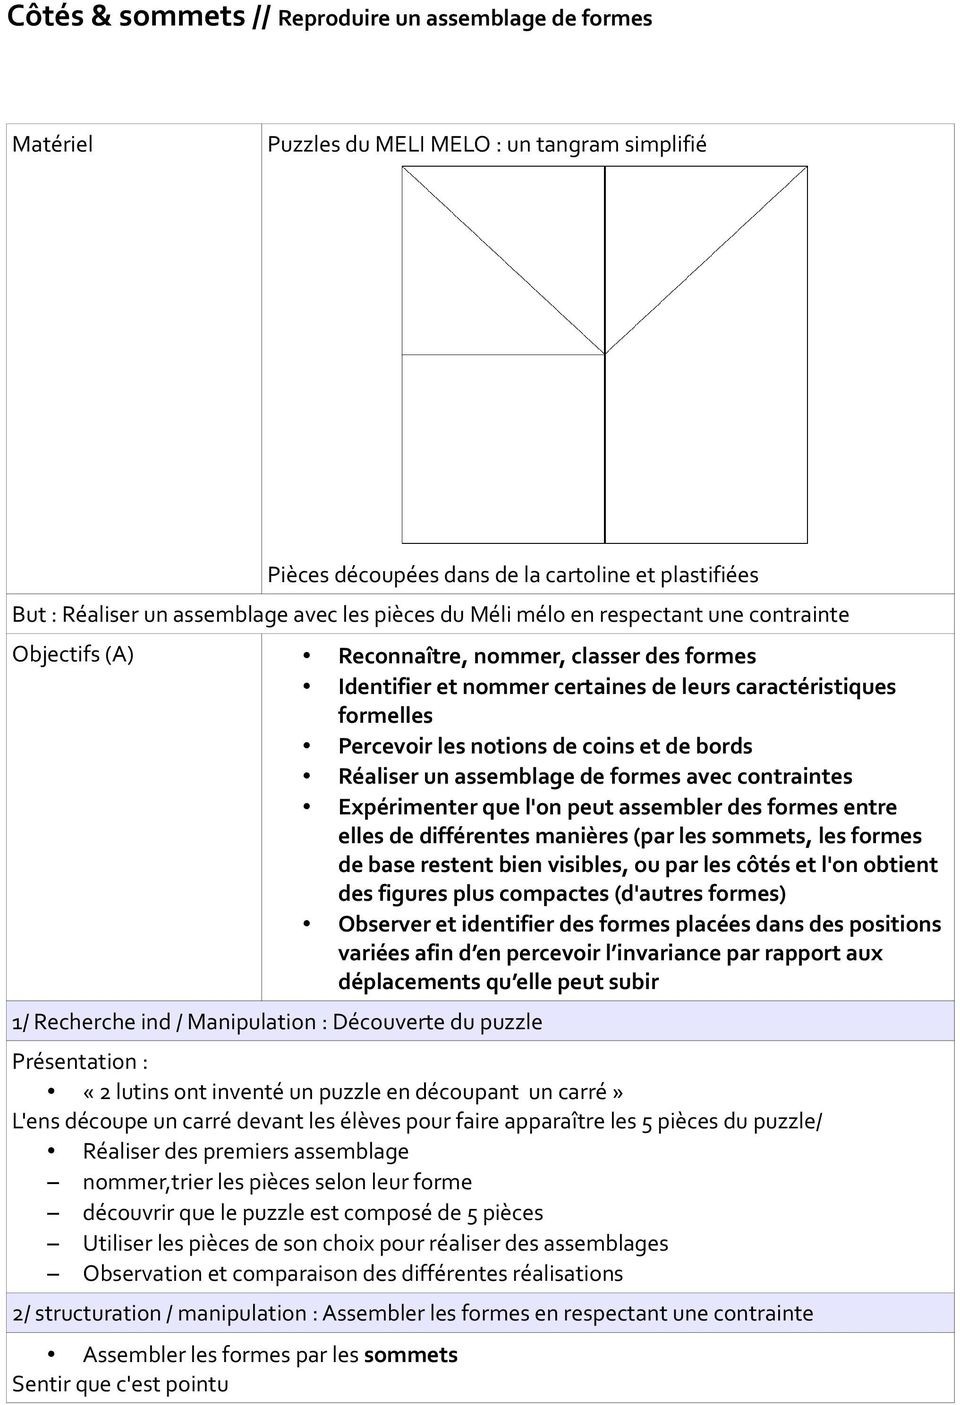 Vers Les Maths Maternelle Moyenne Section Download Free dedans Tangram Moyenne Section